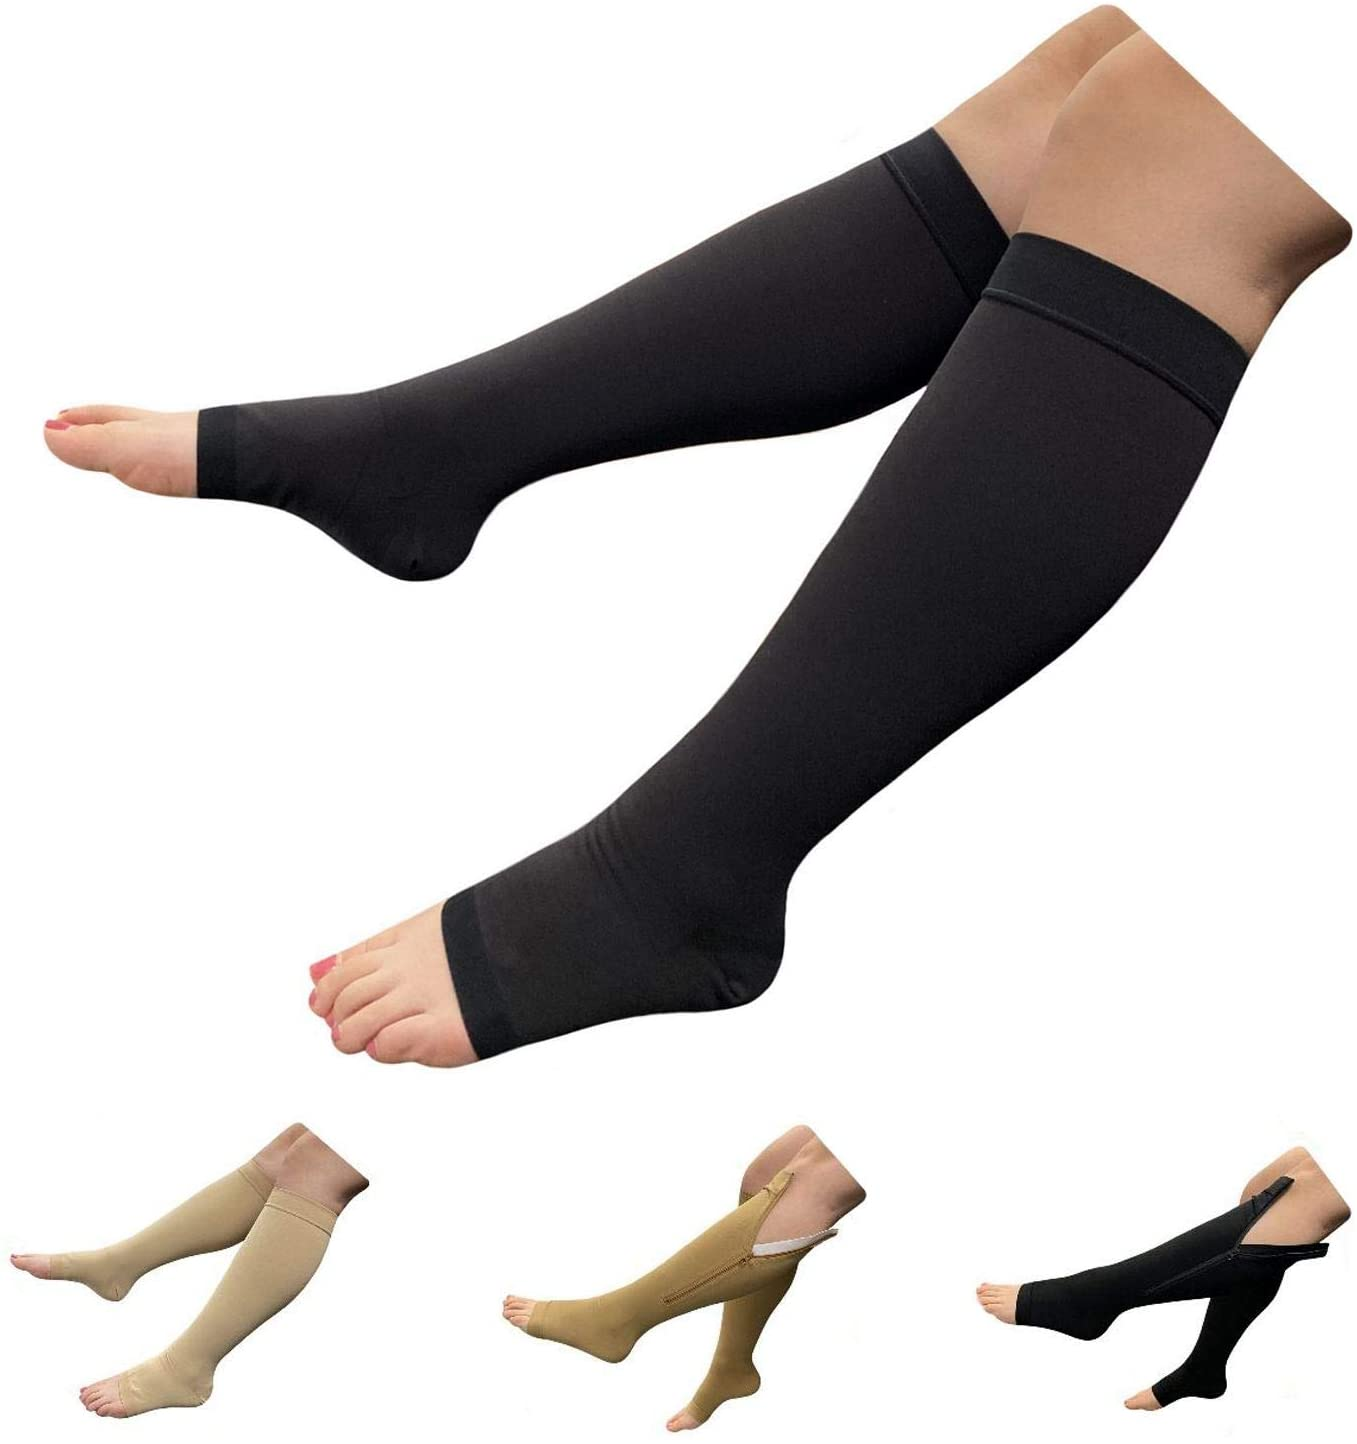 HealthyNees Big Tall Open Toe 20-30 mmHg Compression Plus Wide Calf Leg Socks (Black, 2X-Large)